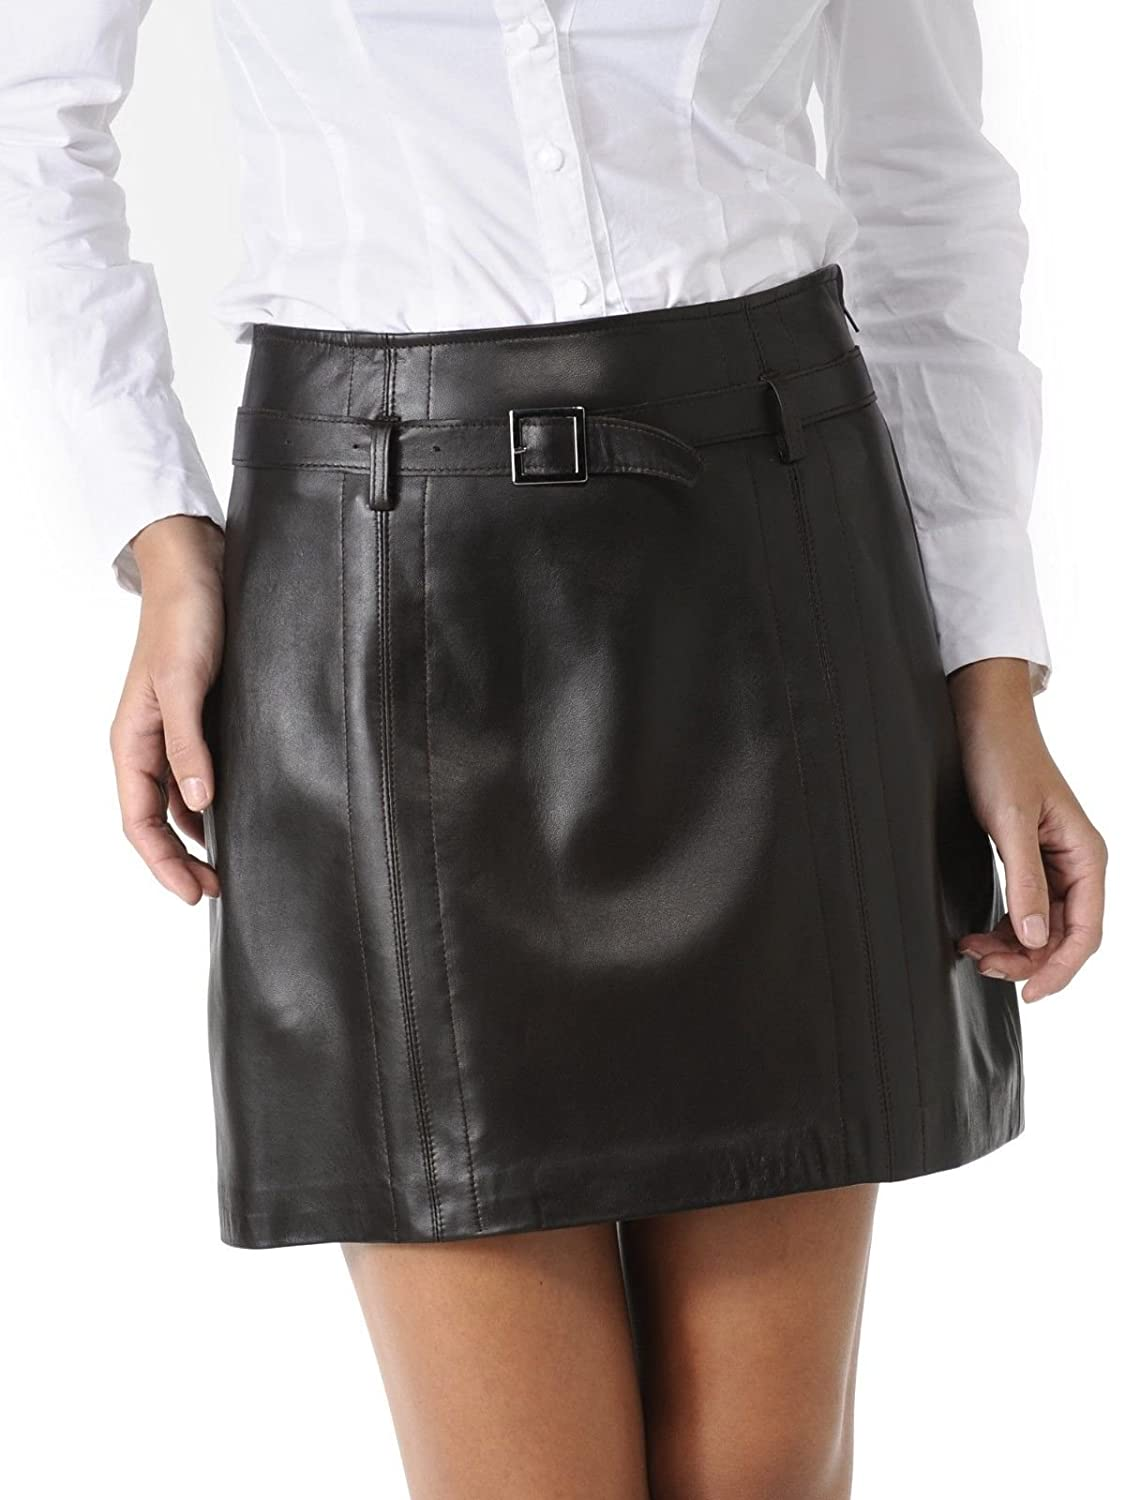 Royal Outfit Genuine Soft Lambskin Leather Skirt for Women - Black